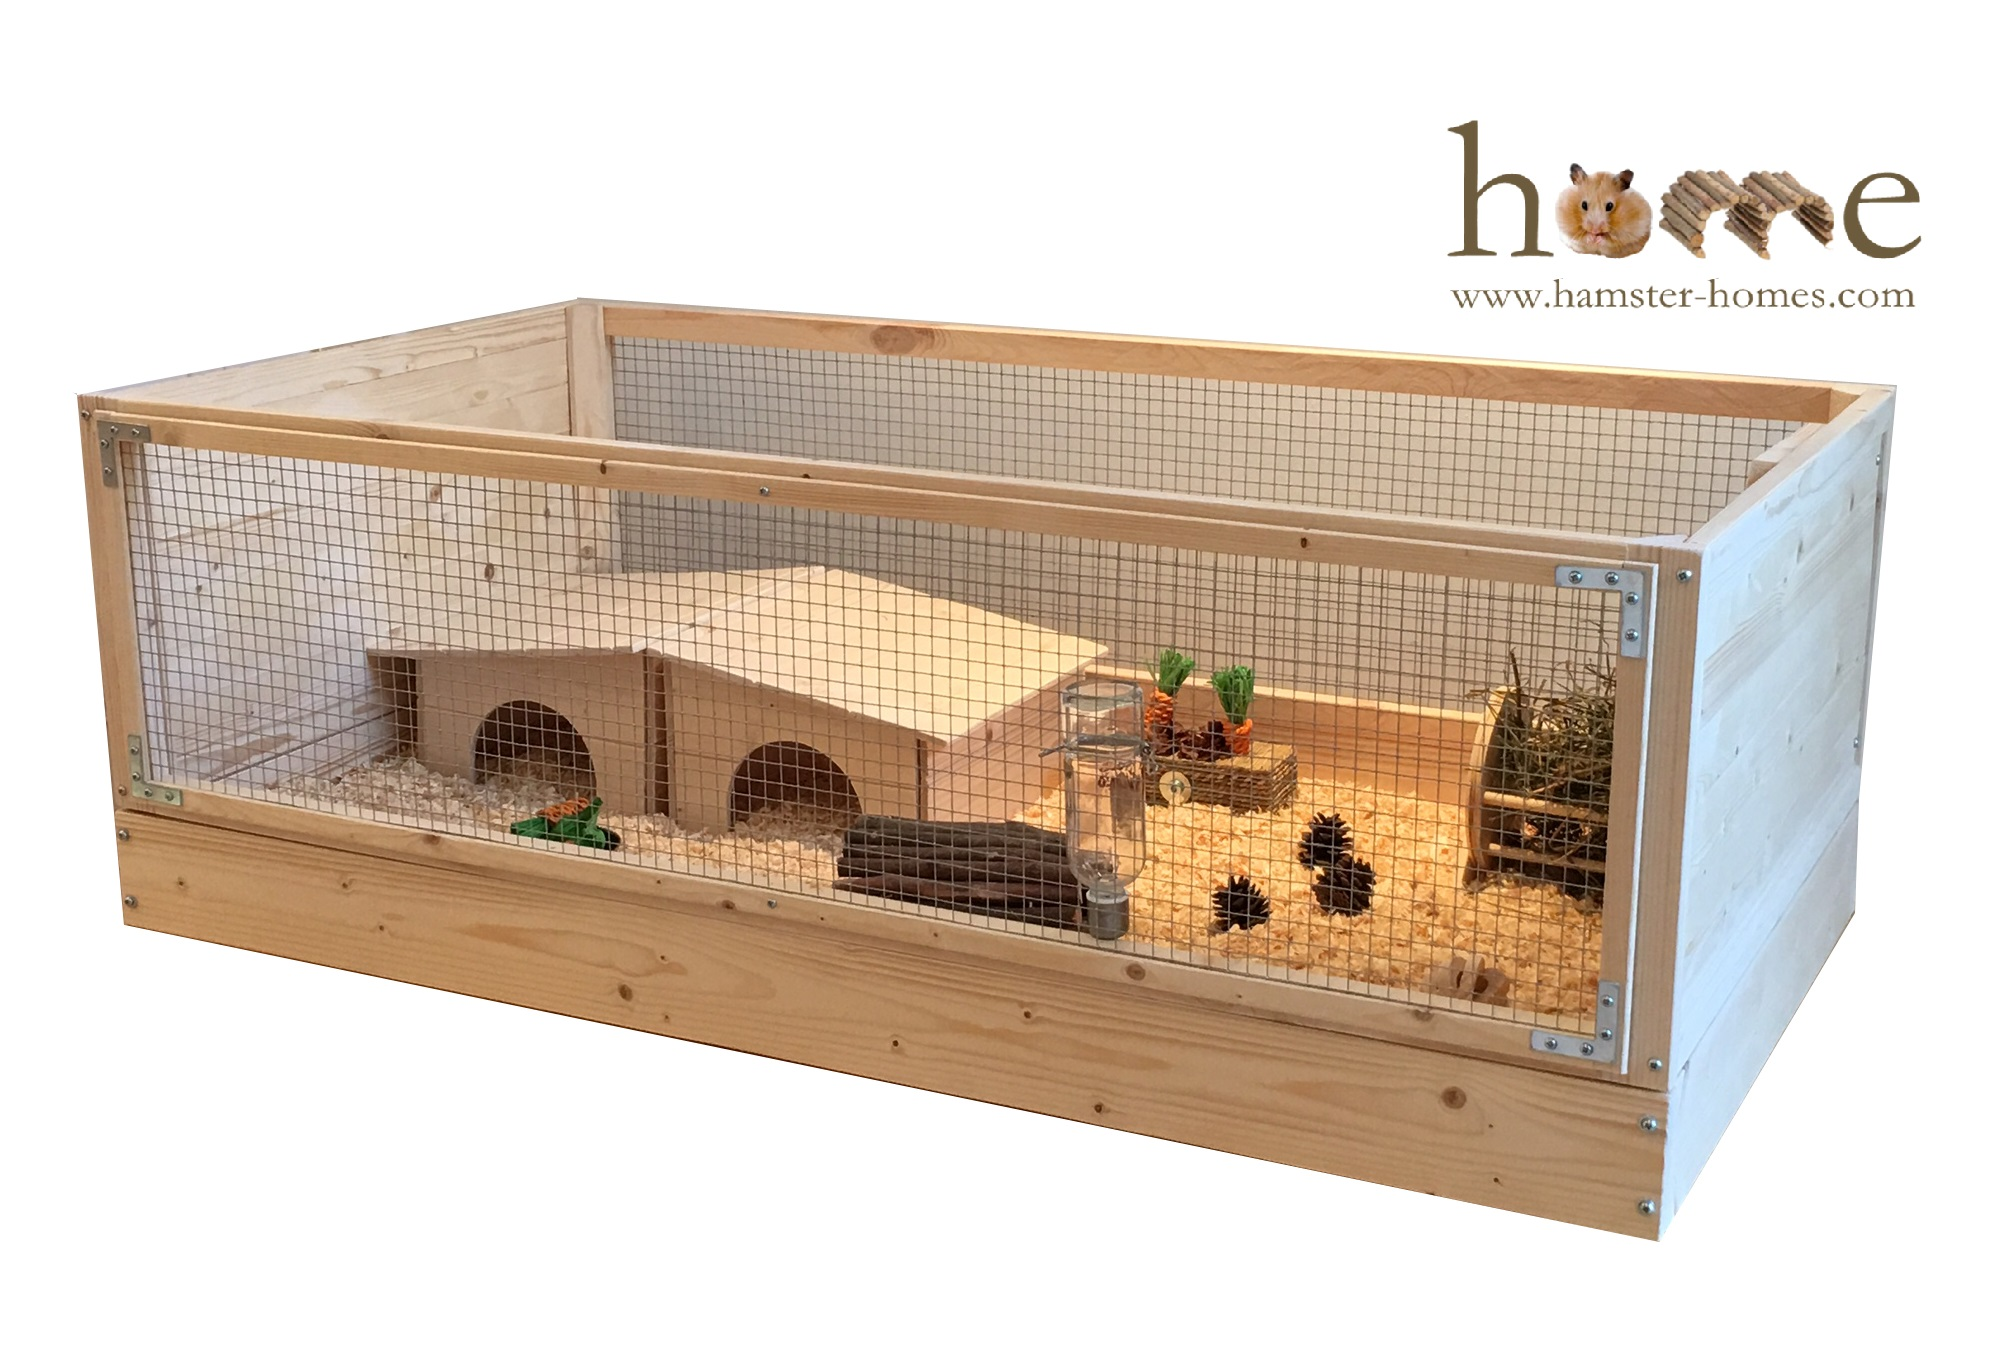 Guinea pig cages picture and images for How to make a cheap guinea pig cage